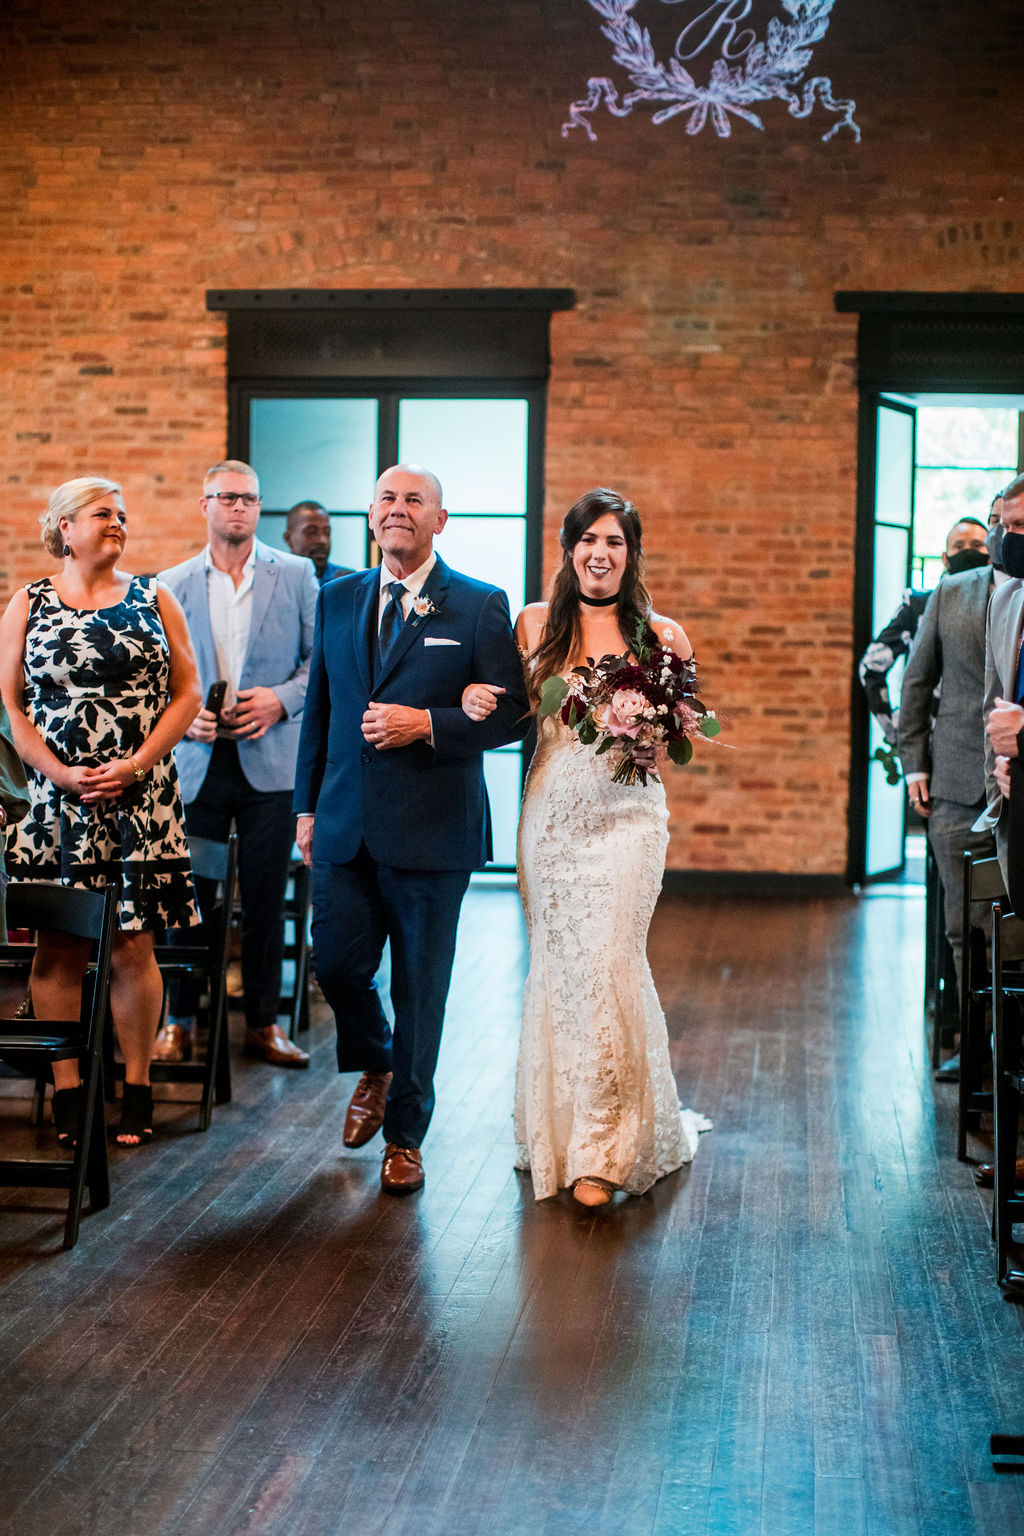 Wedding ceremony photography | Nashville Bride Guide